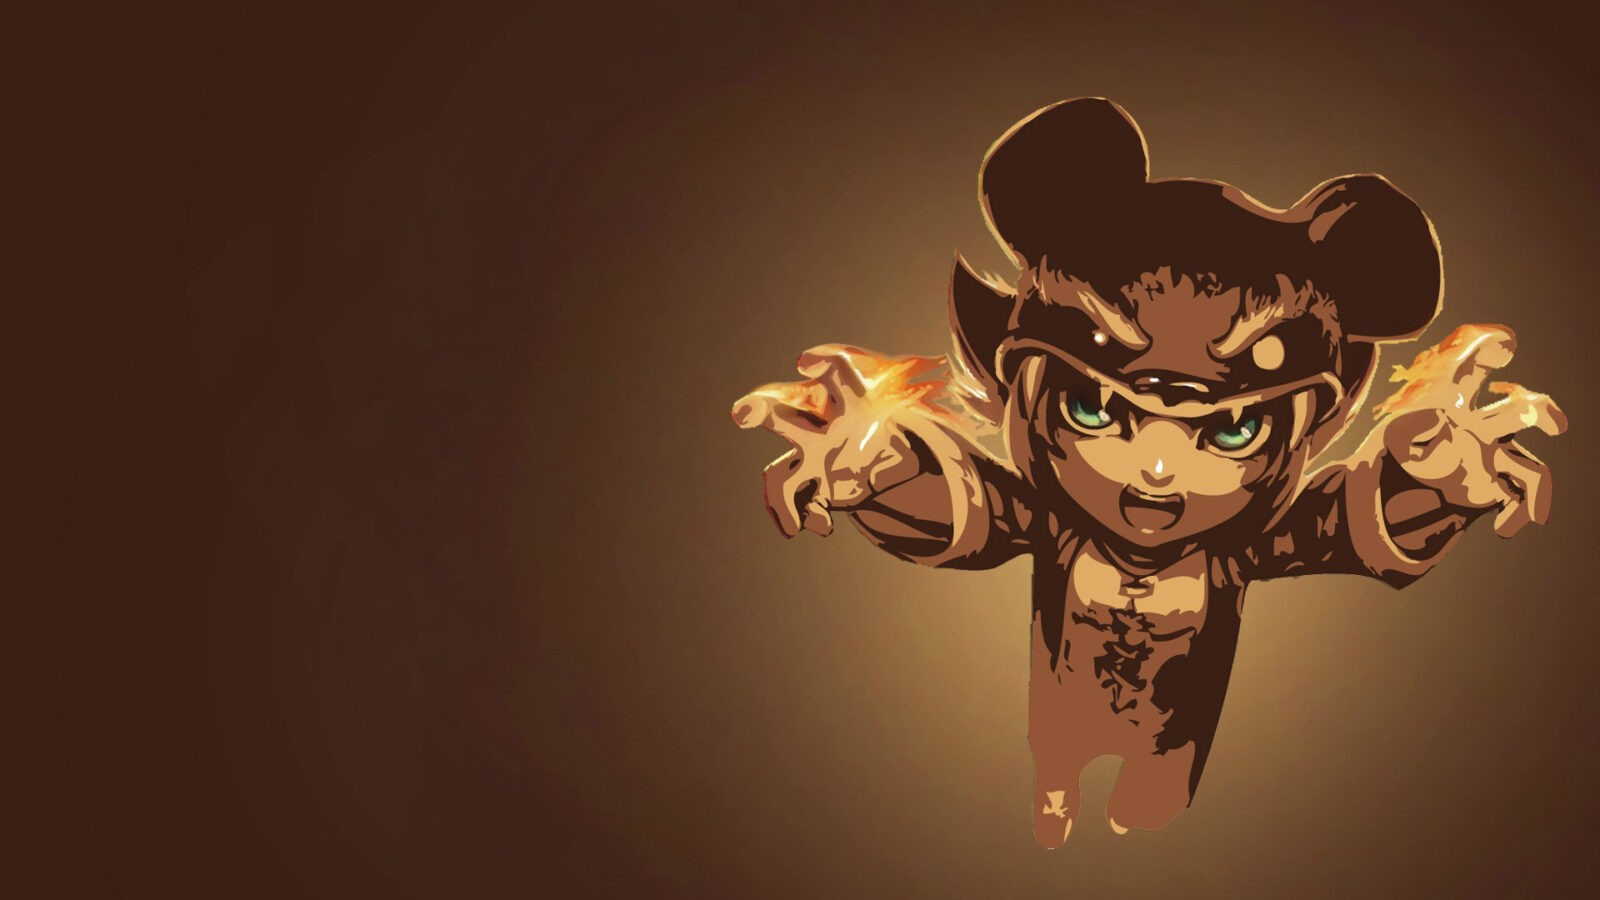 Anime Car 1080p Wallpaper Minimalist League Of Legends Annie Wallpapers Hd Free Download